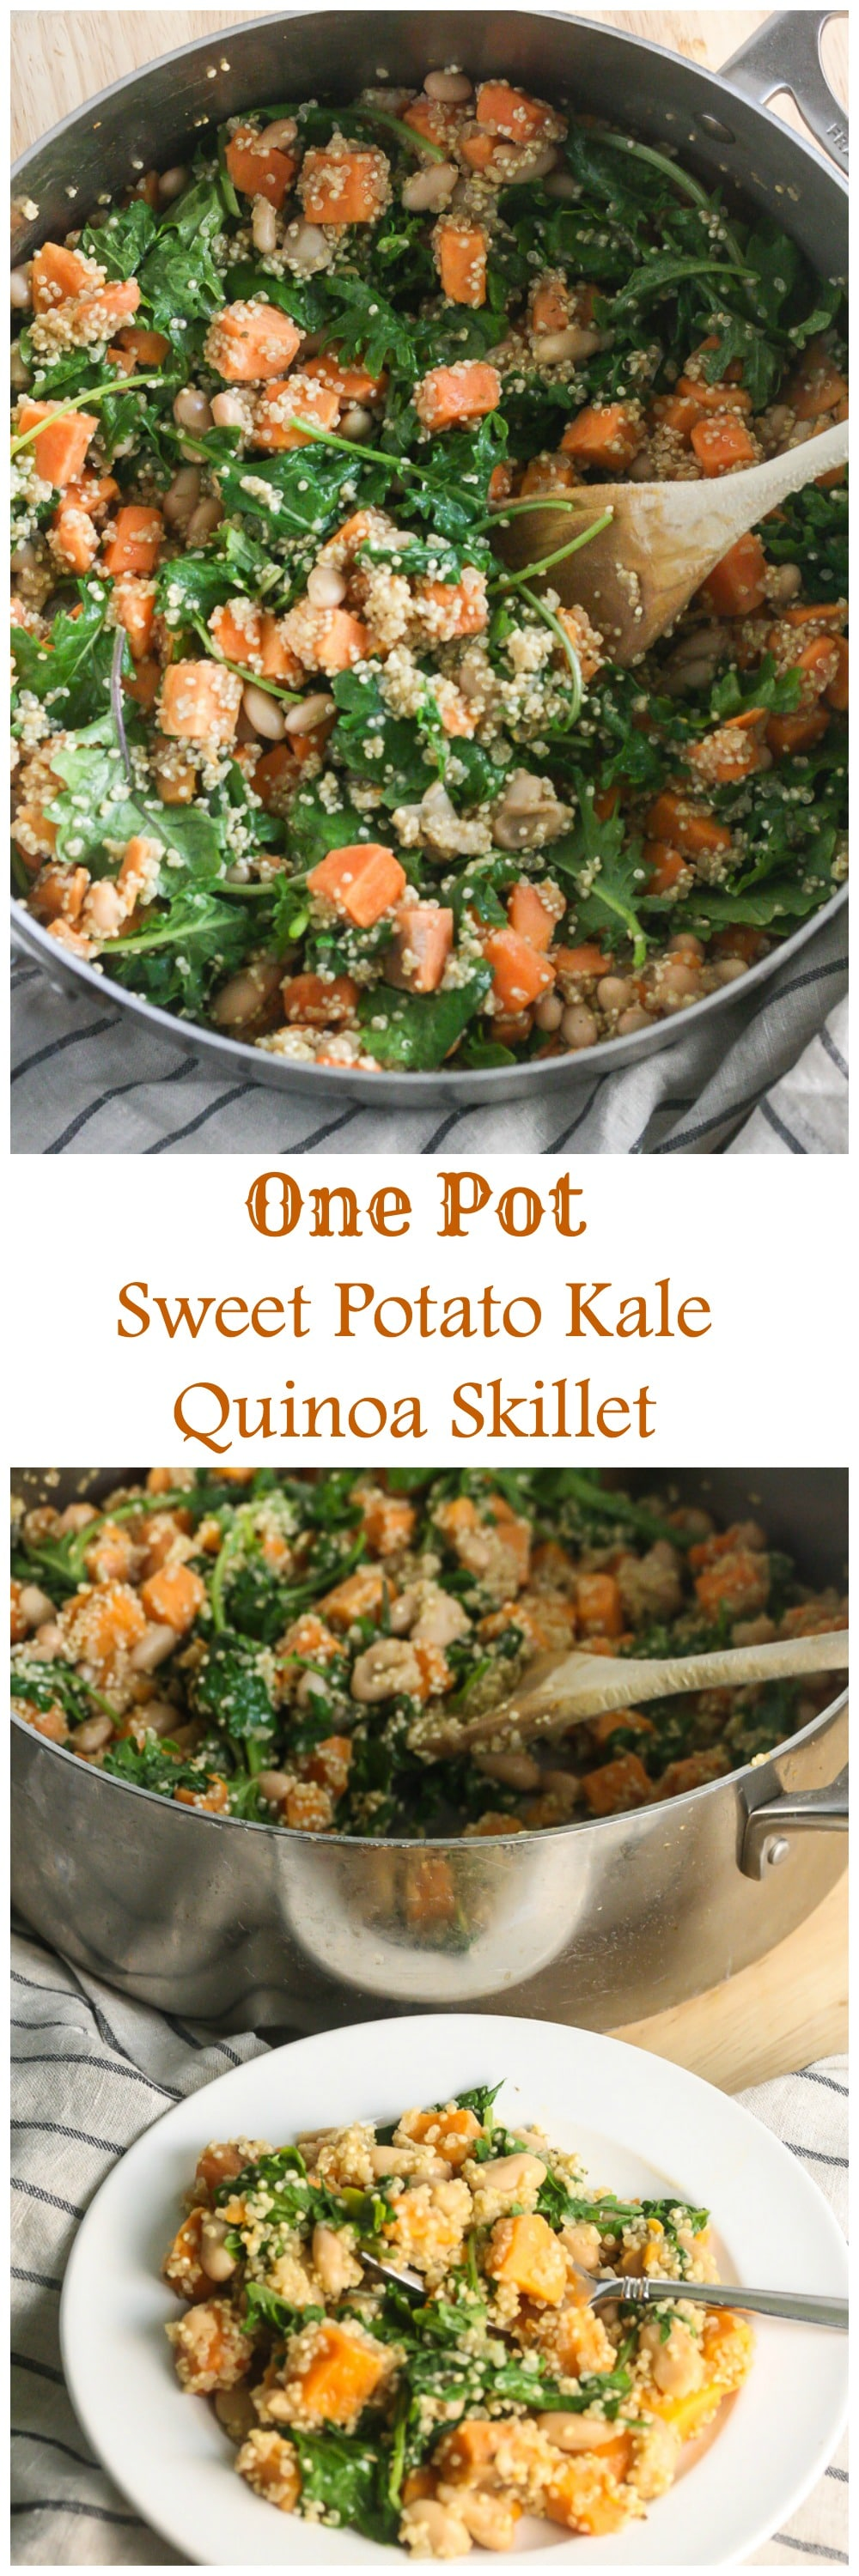 Sweet Potato Kale Quinoa Skillet